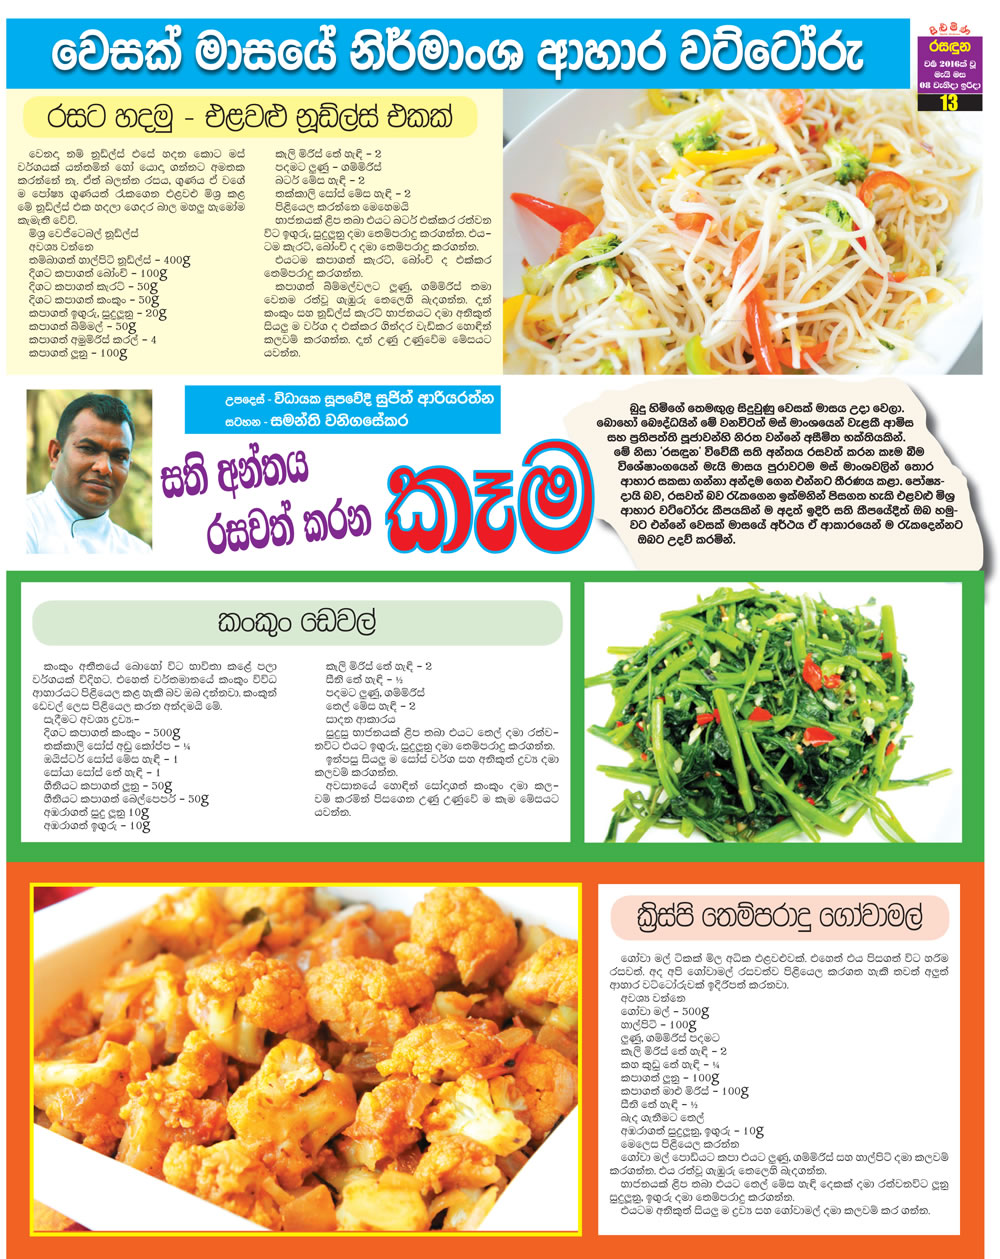 Vegetarian food recipes in sinhala lanka online paper vegetarian food recipes forumfinder Choice Image